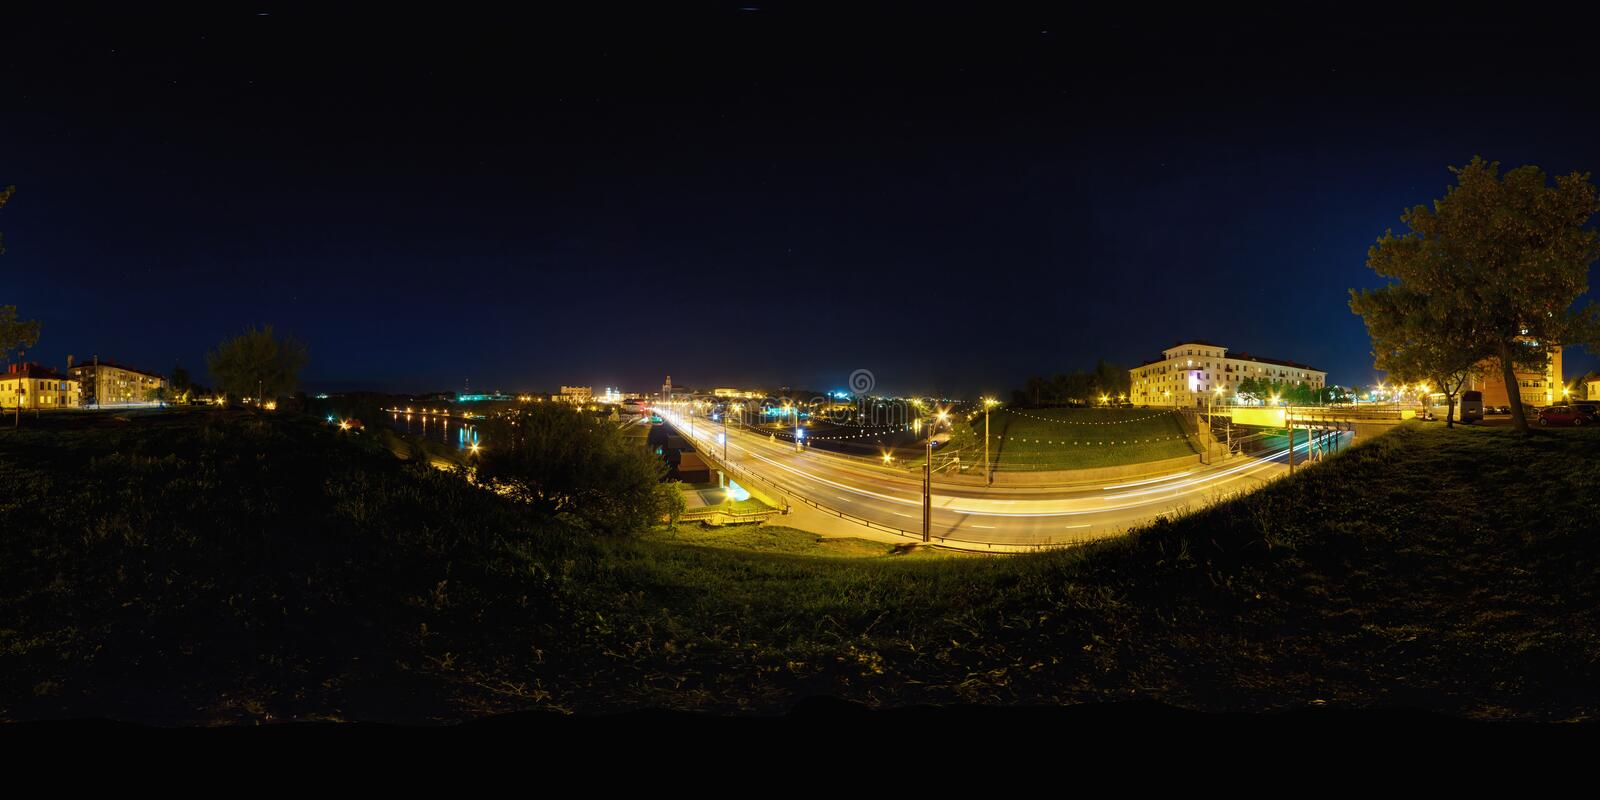 Full spherical 360 by 180 degrees seamless panorama in equirectangular equidistant projection, panorama of night park.  royalty free stock photos